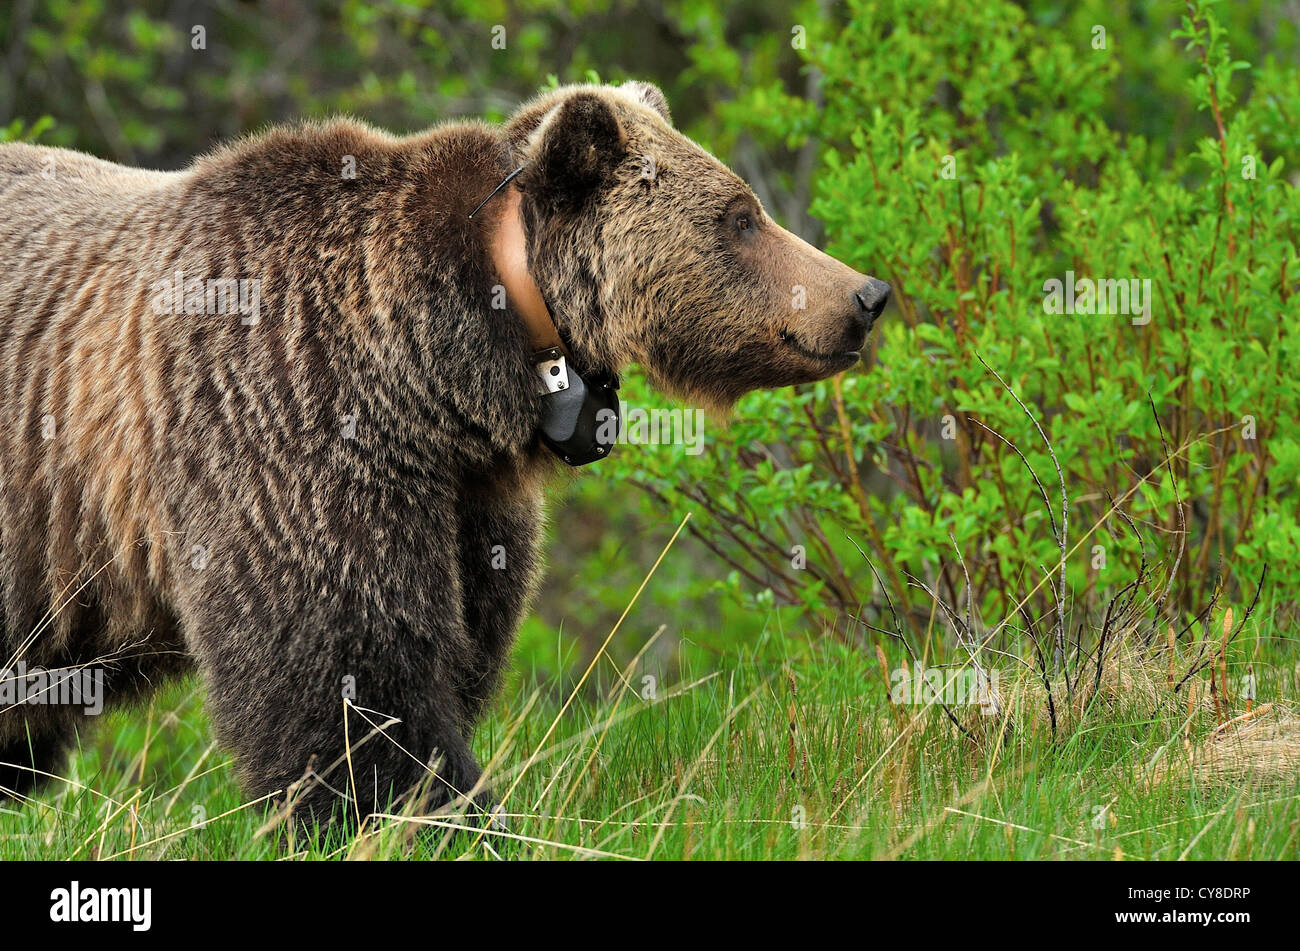 A side view of a wild grizzly bear with a tracking collar. - Stock Image